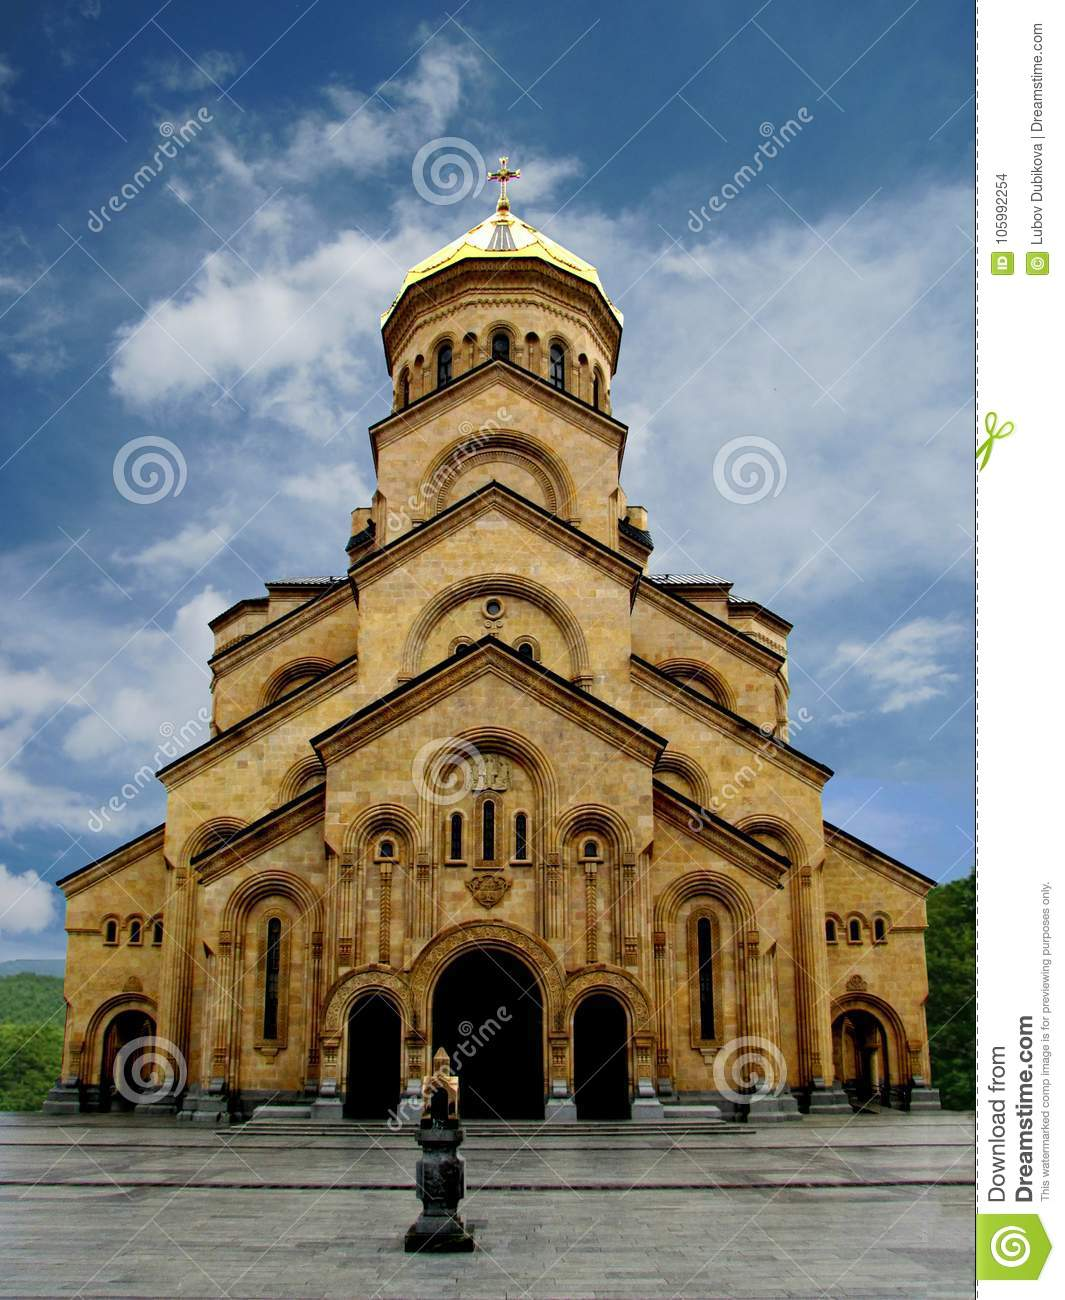 Christian stone Church with a gilded dome